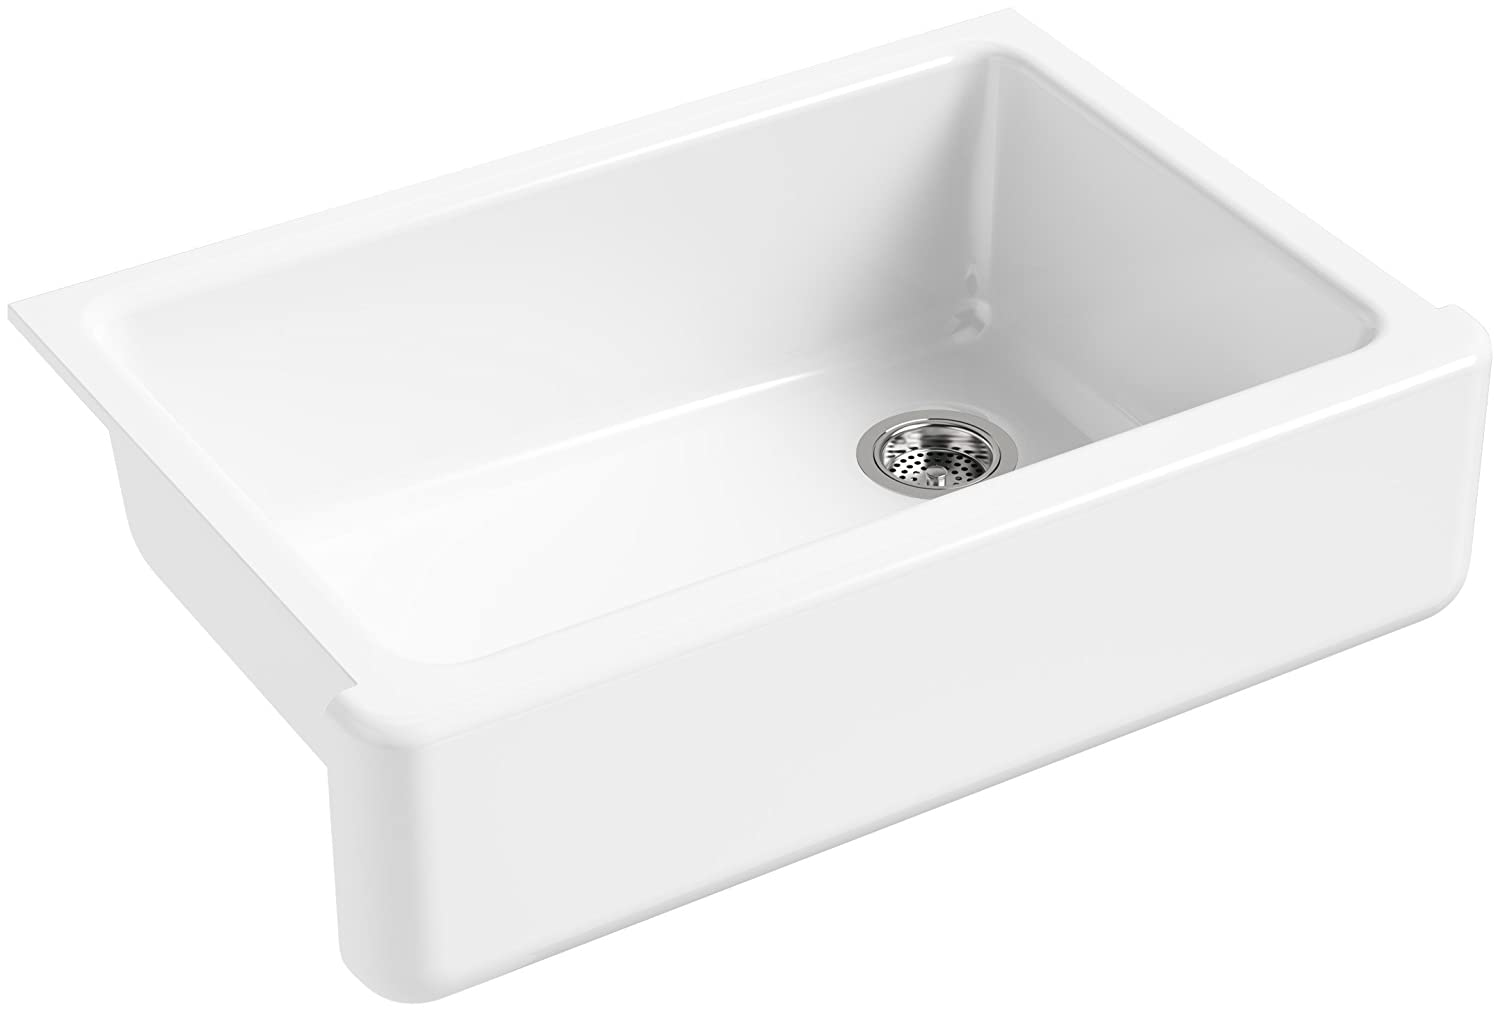 Cast Iron Sink Reviews 2018 - Uncle Paul\'s Top 4 Choices